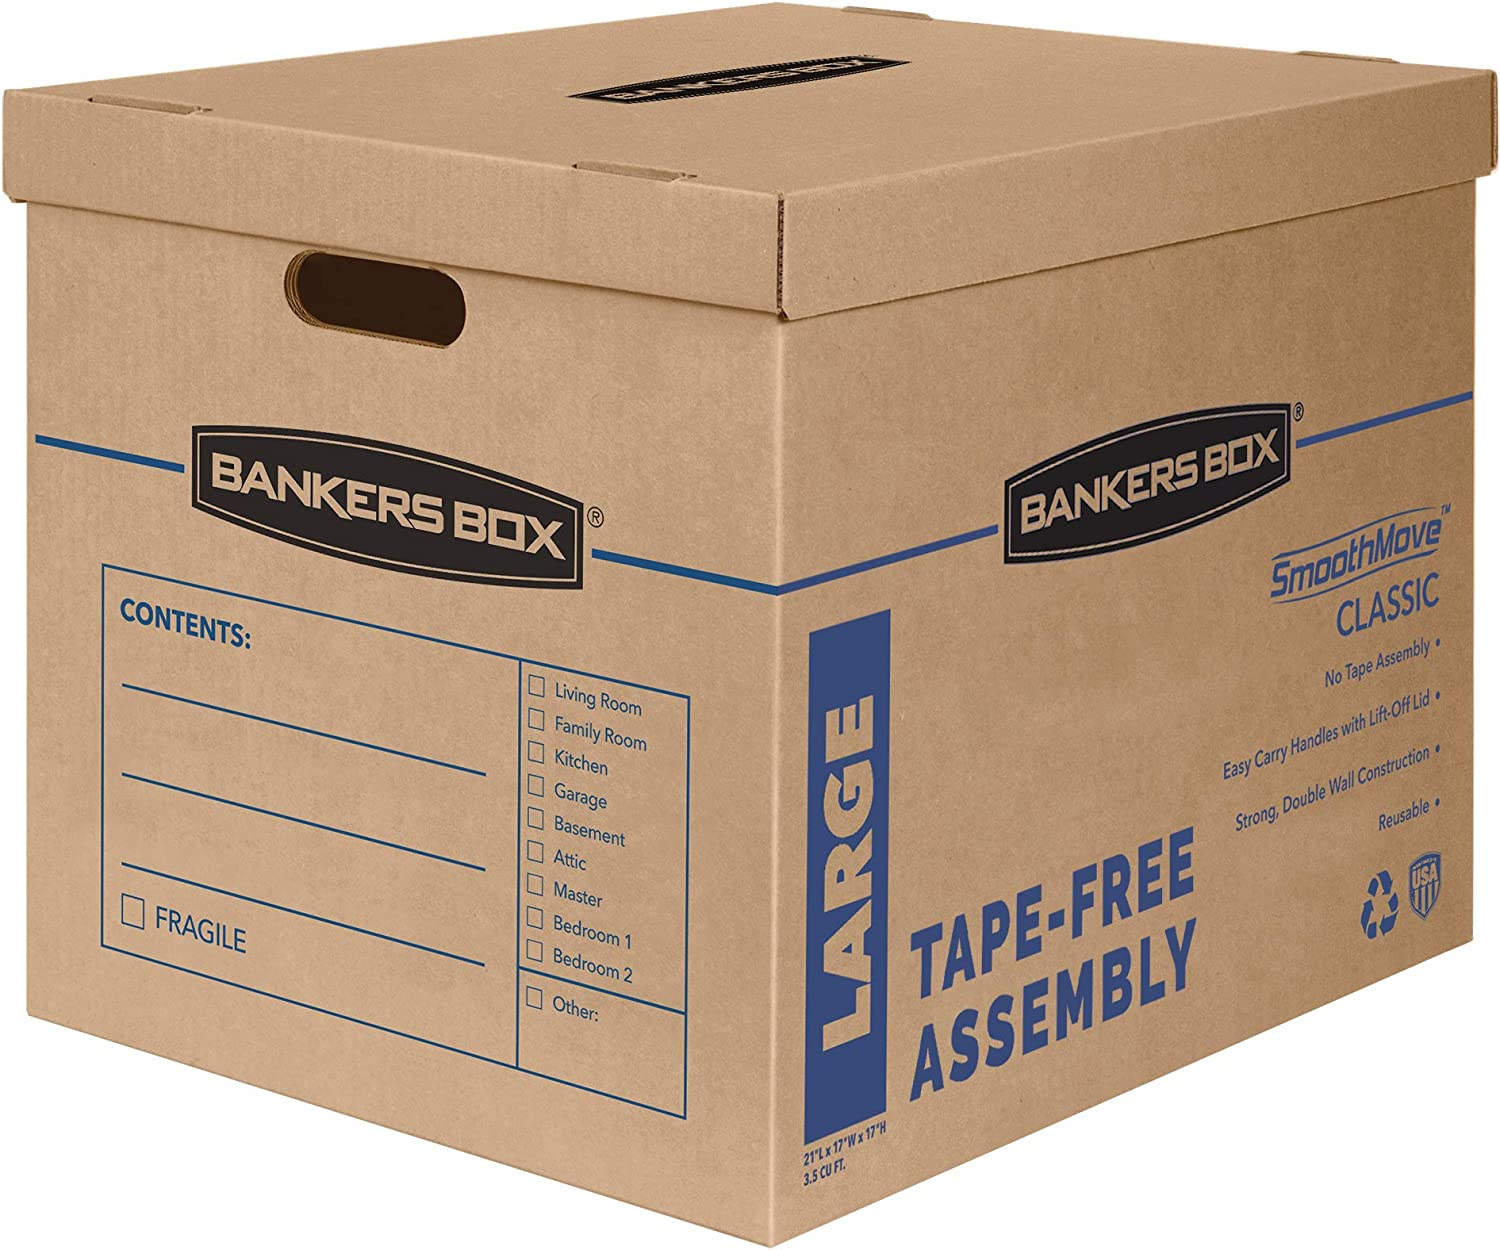 Bankers Box SmoothMove Classic Fort Worth Mall Max 89% OFF Assembly Tape-Free Boxes Moving